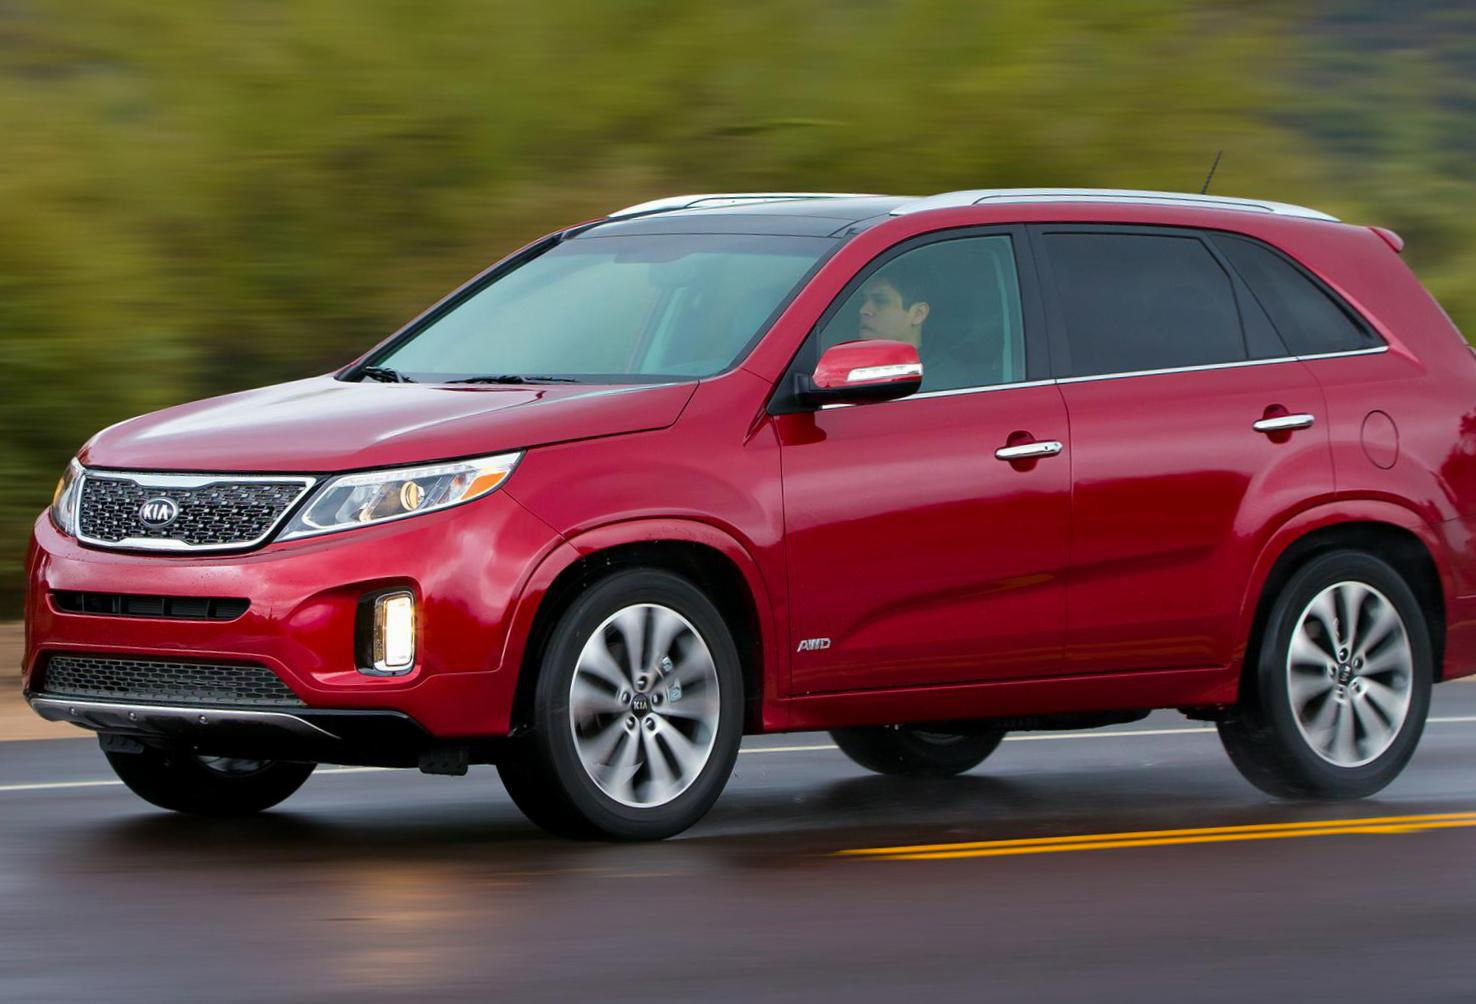 Sorento KIA usa hatchback